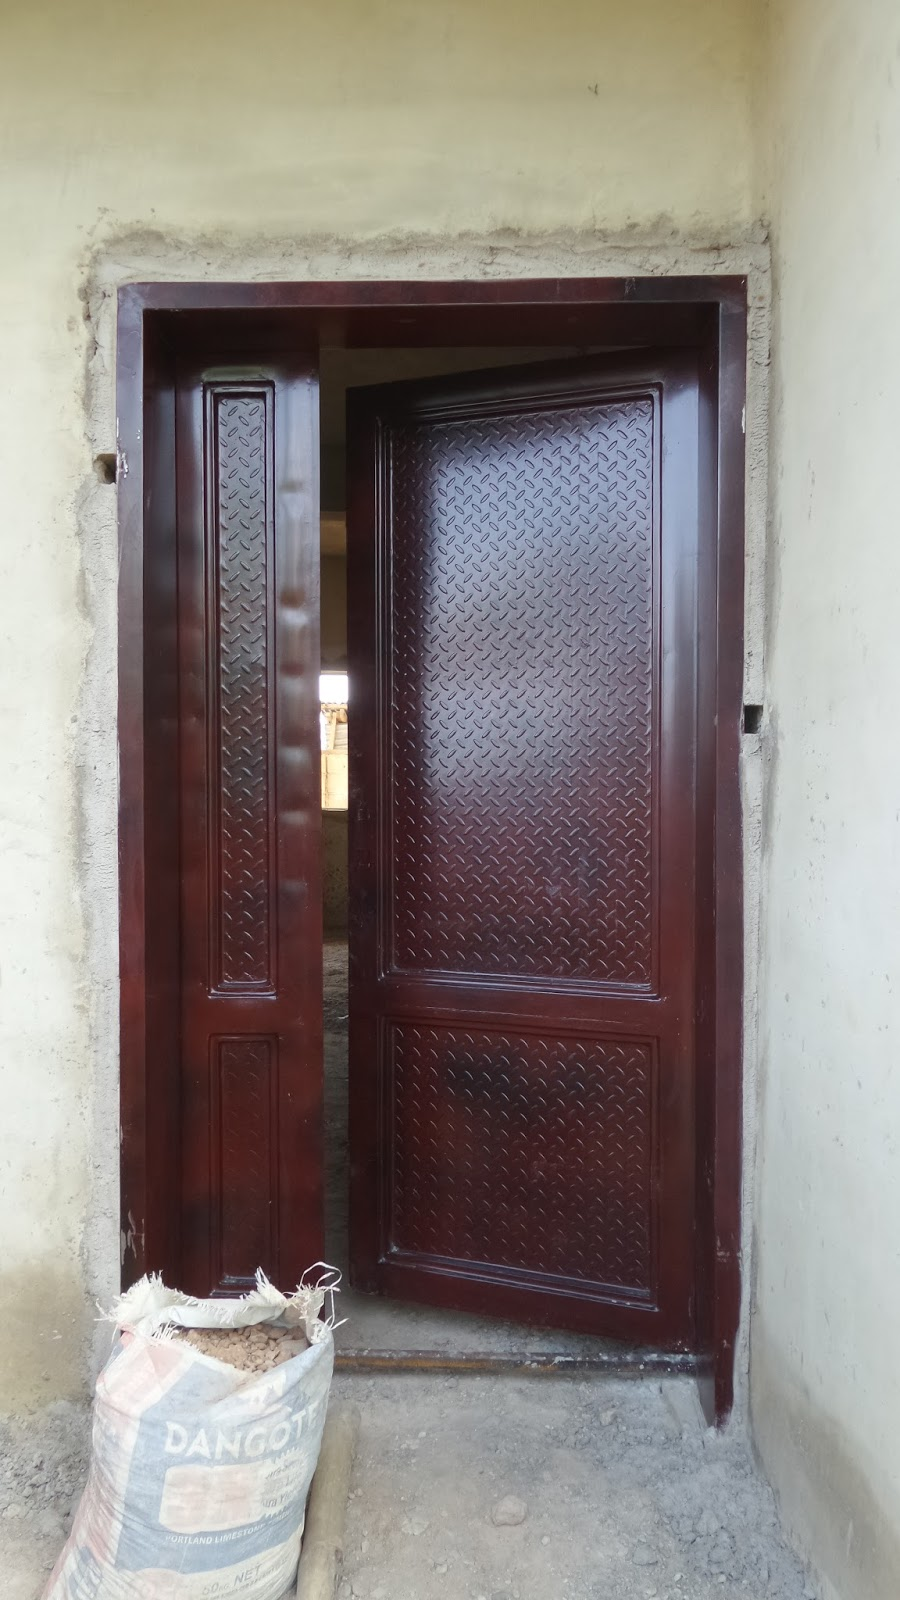 20161005_150719.jpg & Local metal doors in Nigeria. | amazing viewpoints Pezcame.Com